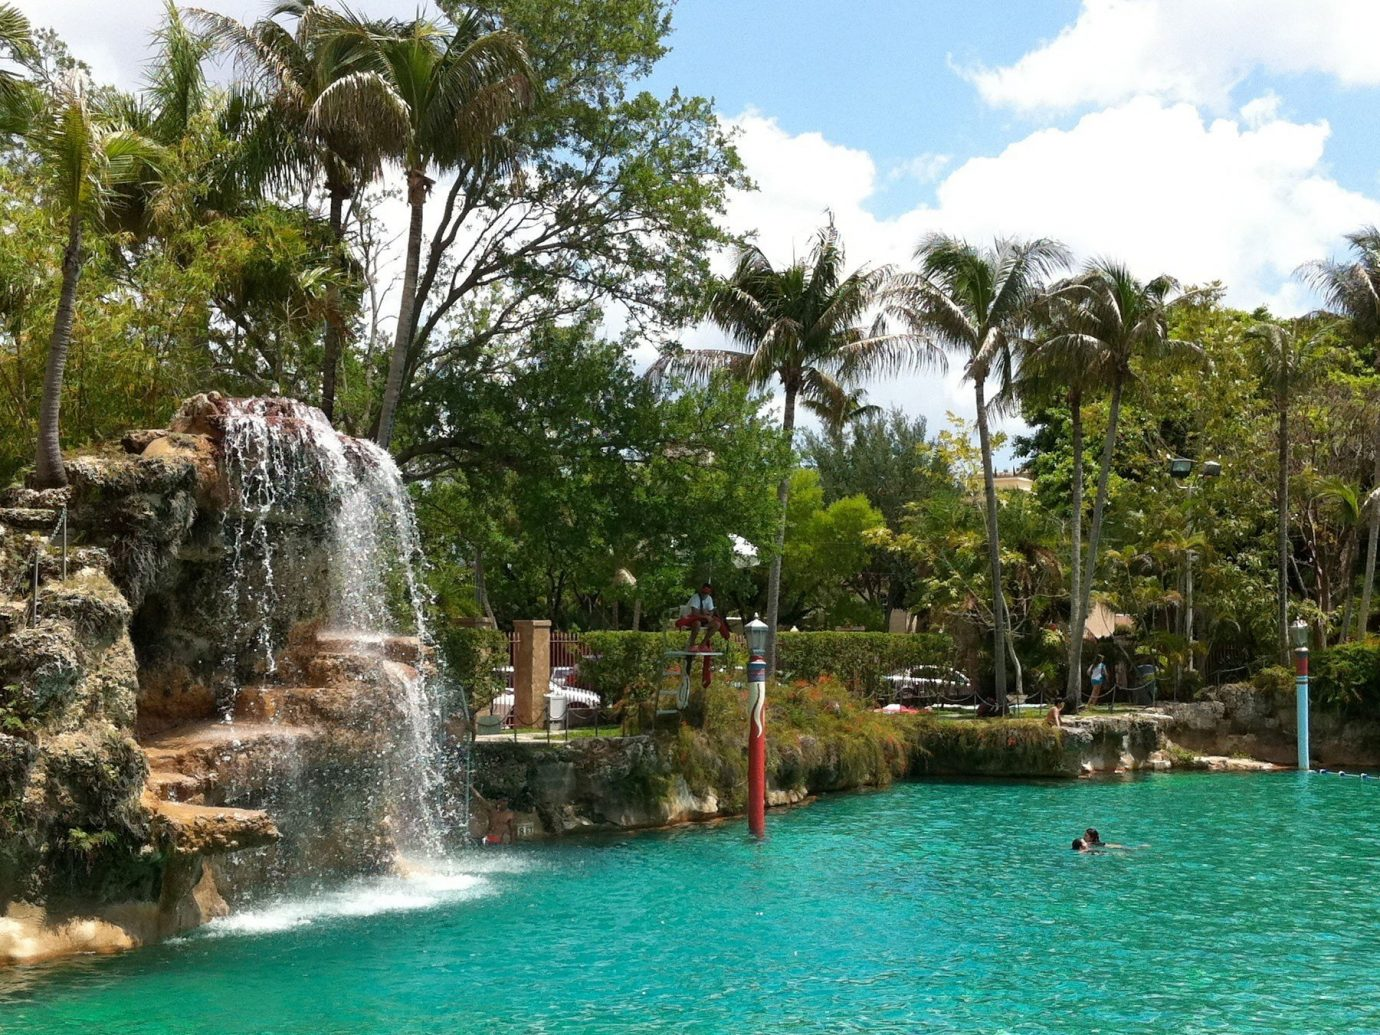 Trip Ideas tree outdoor sky water swimming pool Resort estate Water park park Lagoon plant surrounded several